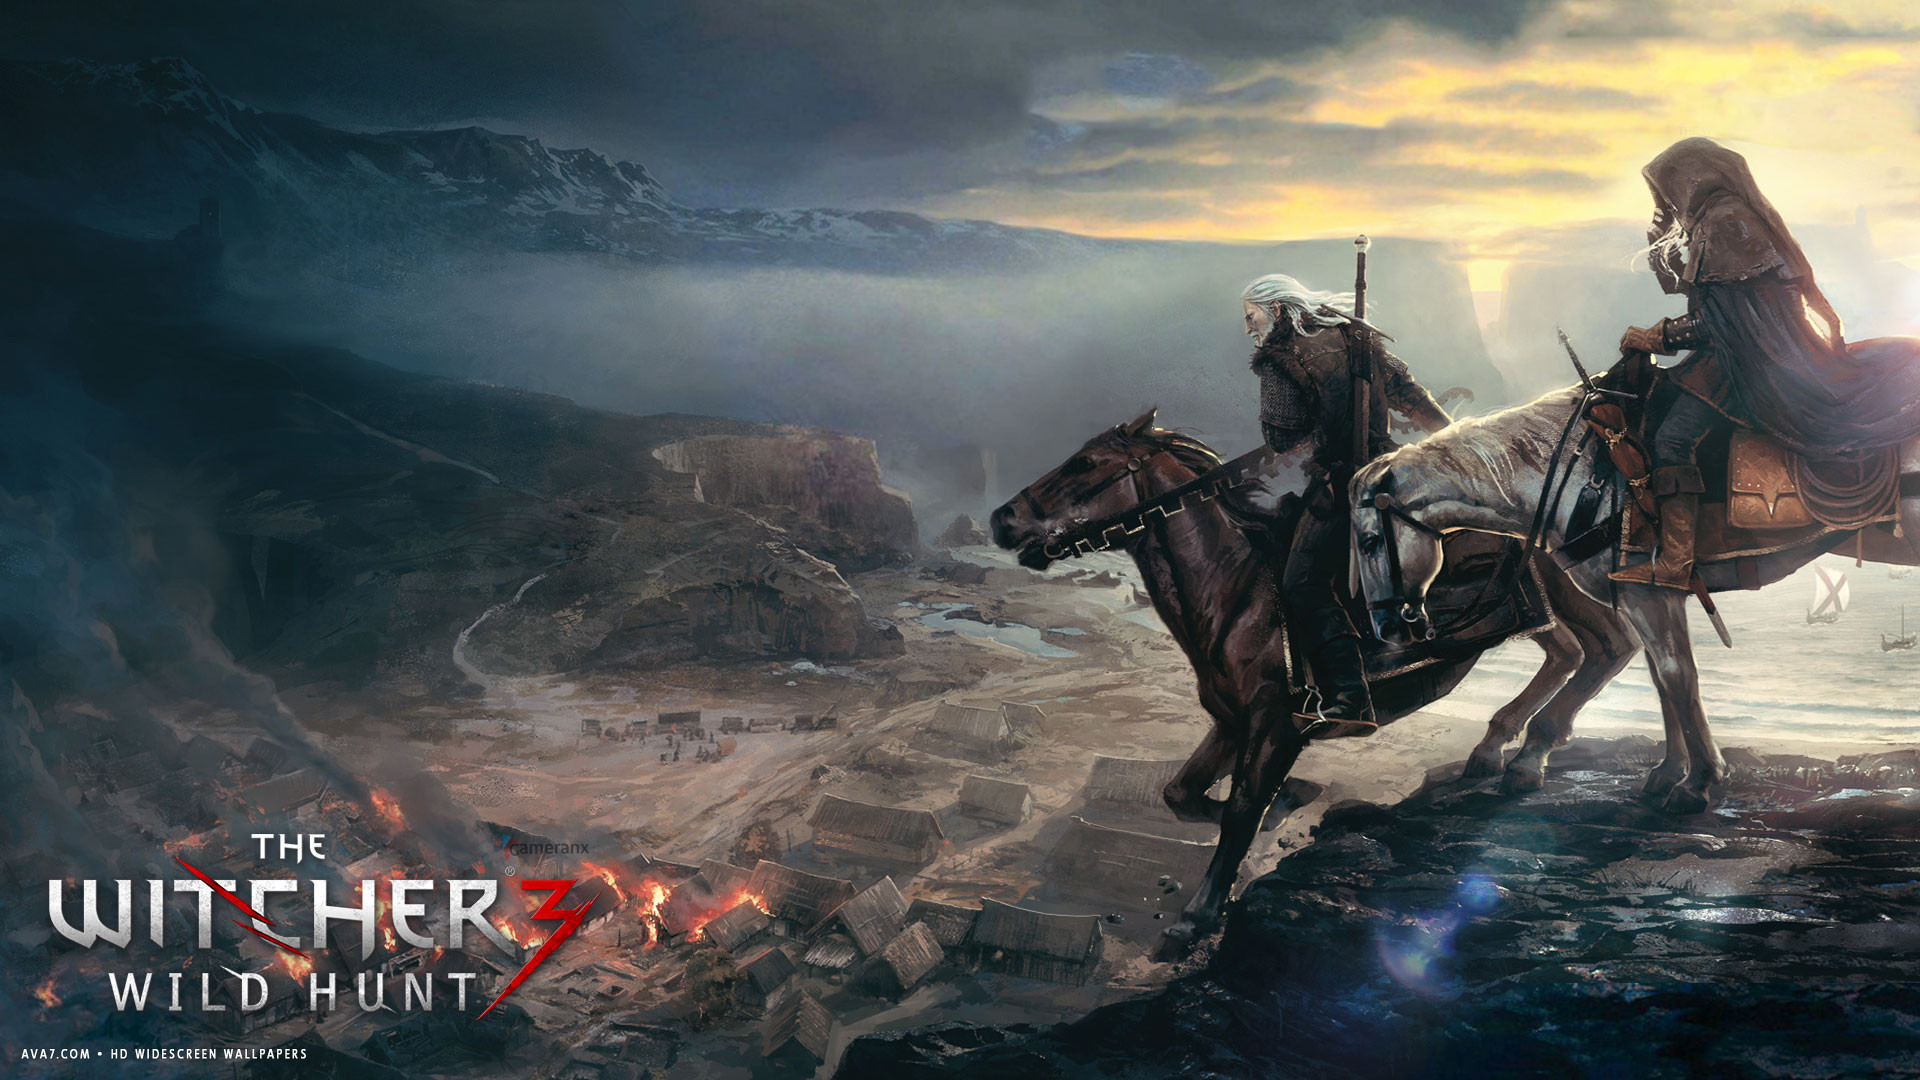 witcher 3 wild hunt game hd widescreen wallpaper